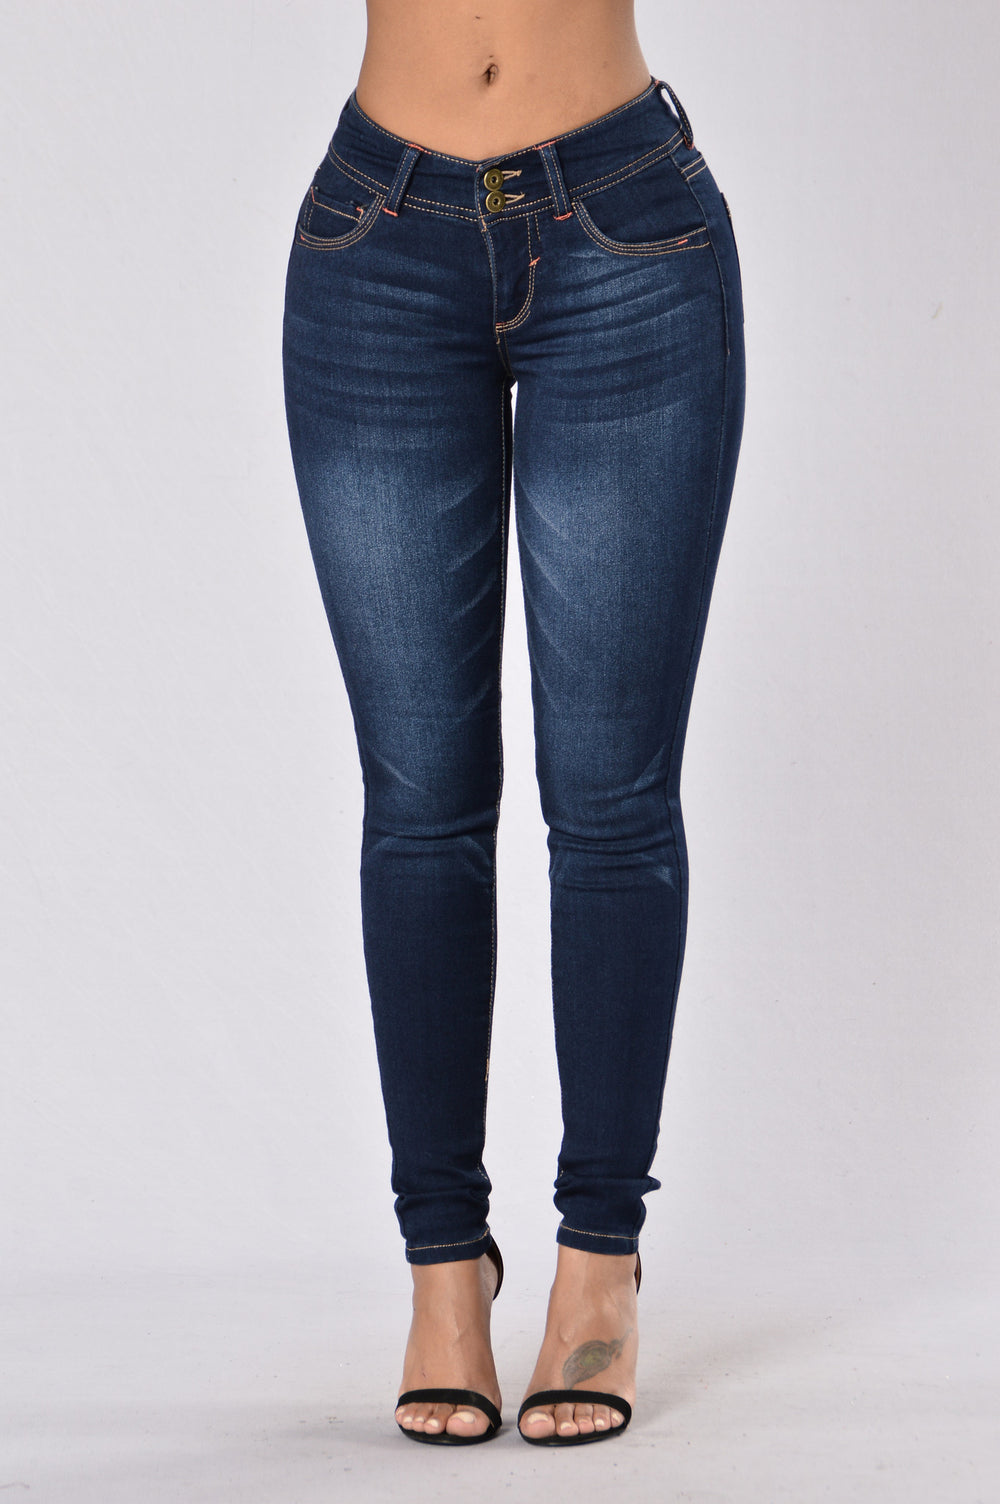 Bad Bone Jeans - Dark Stone Wash